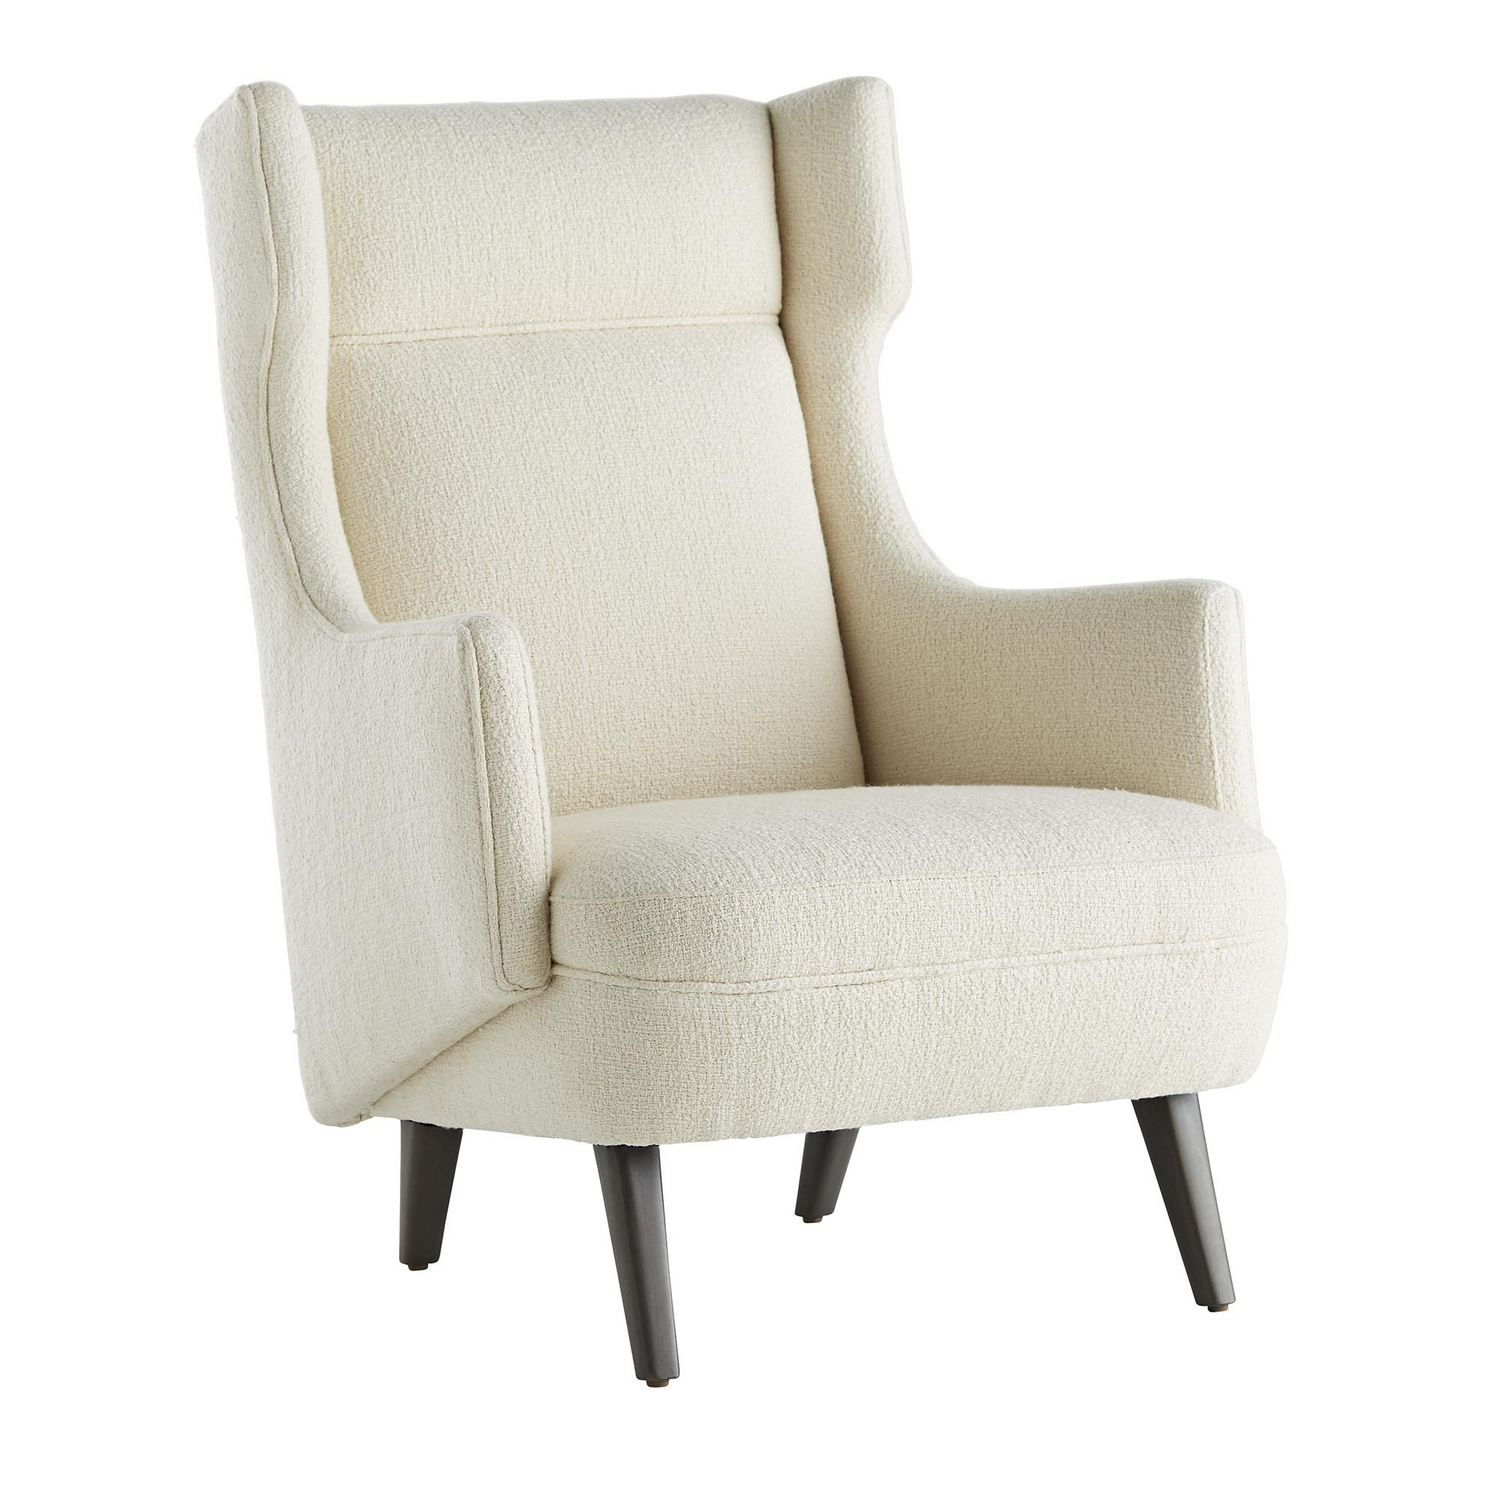 Chair by Arteriors 8090